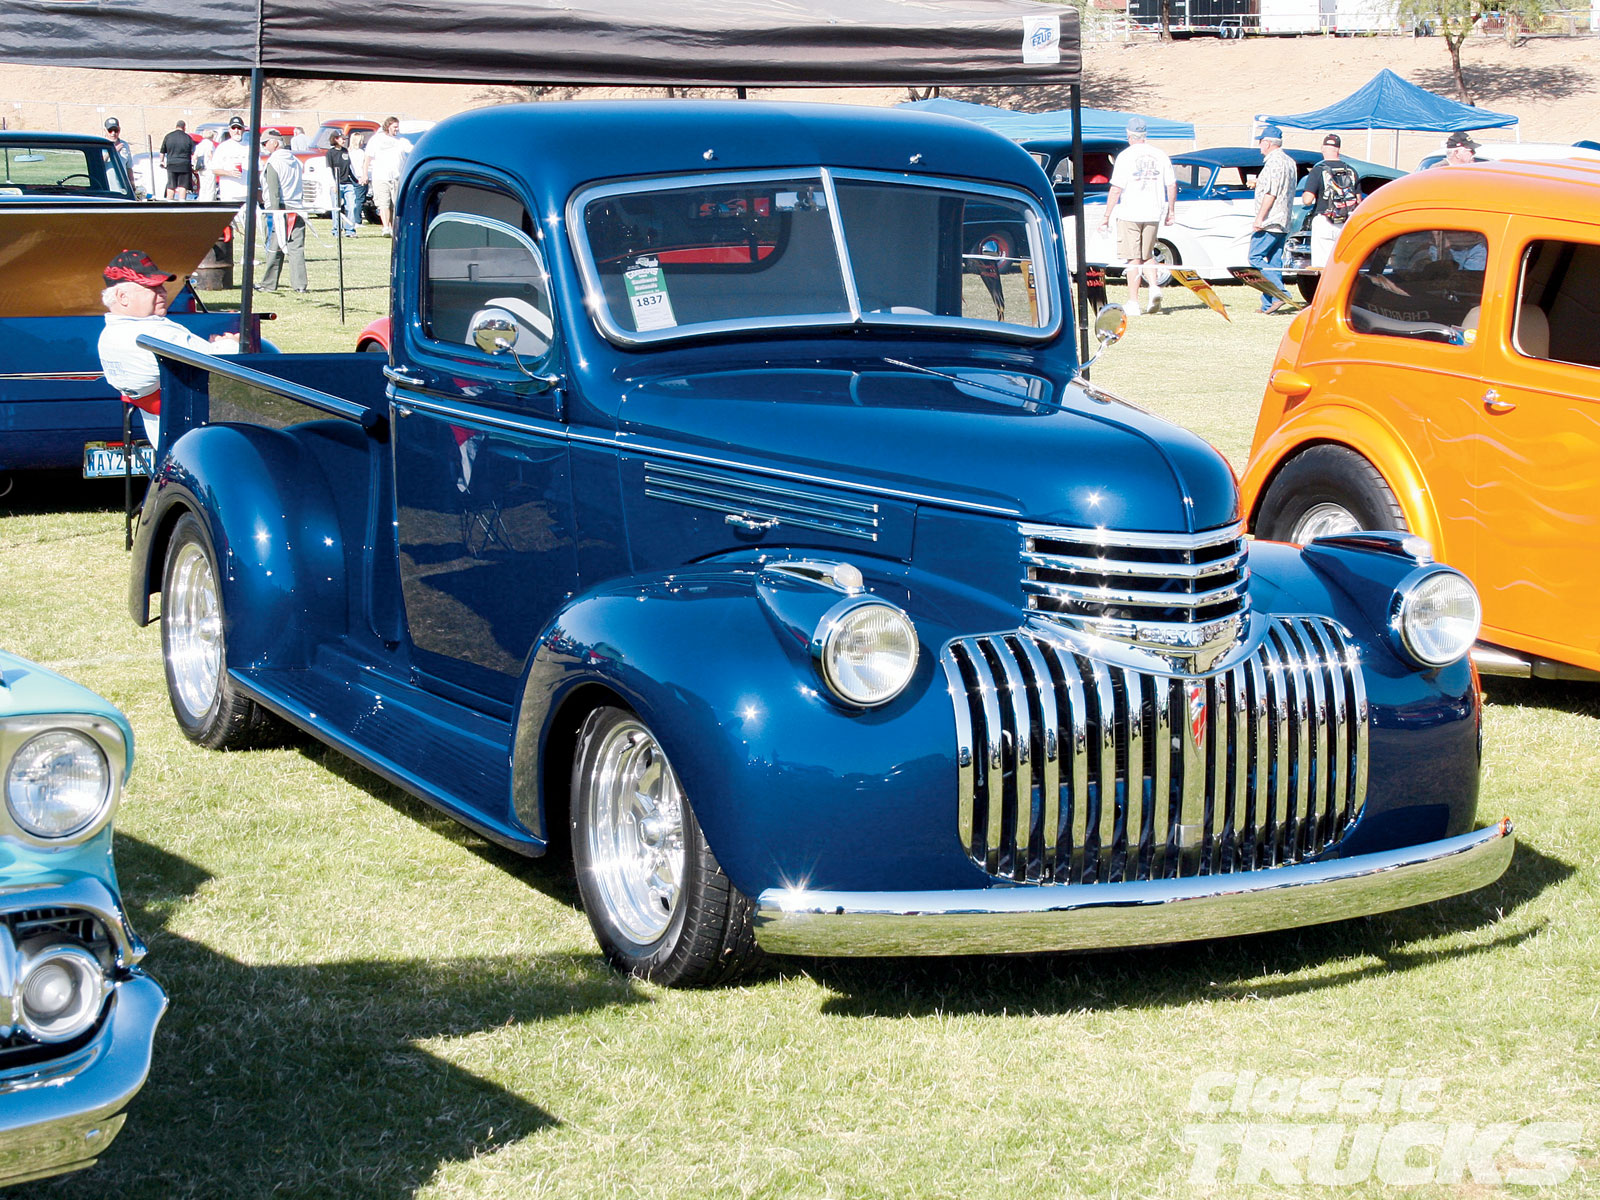 Best Looking Classic Trucks | Auto Insurance Newz